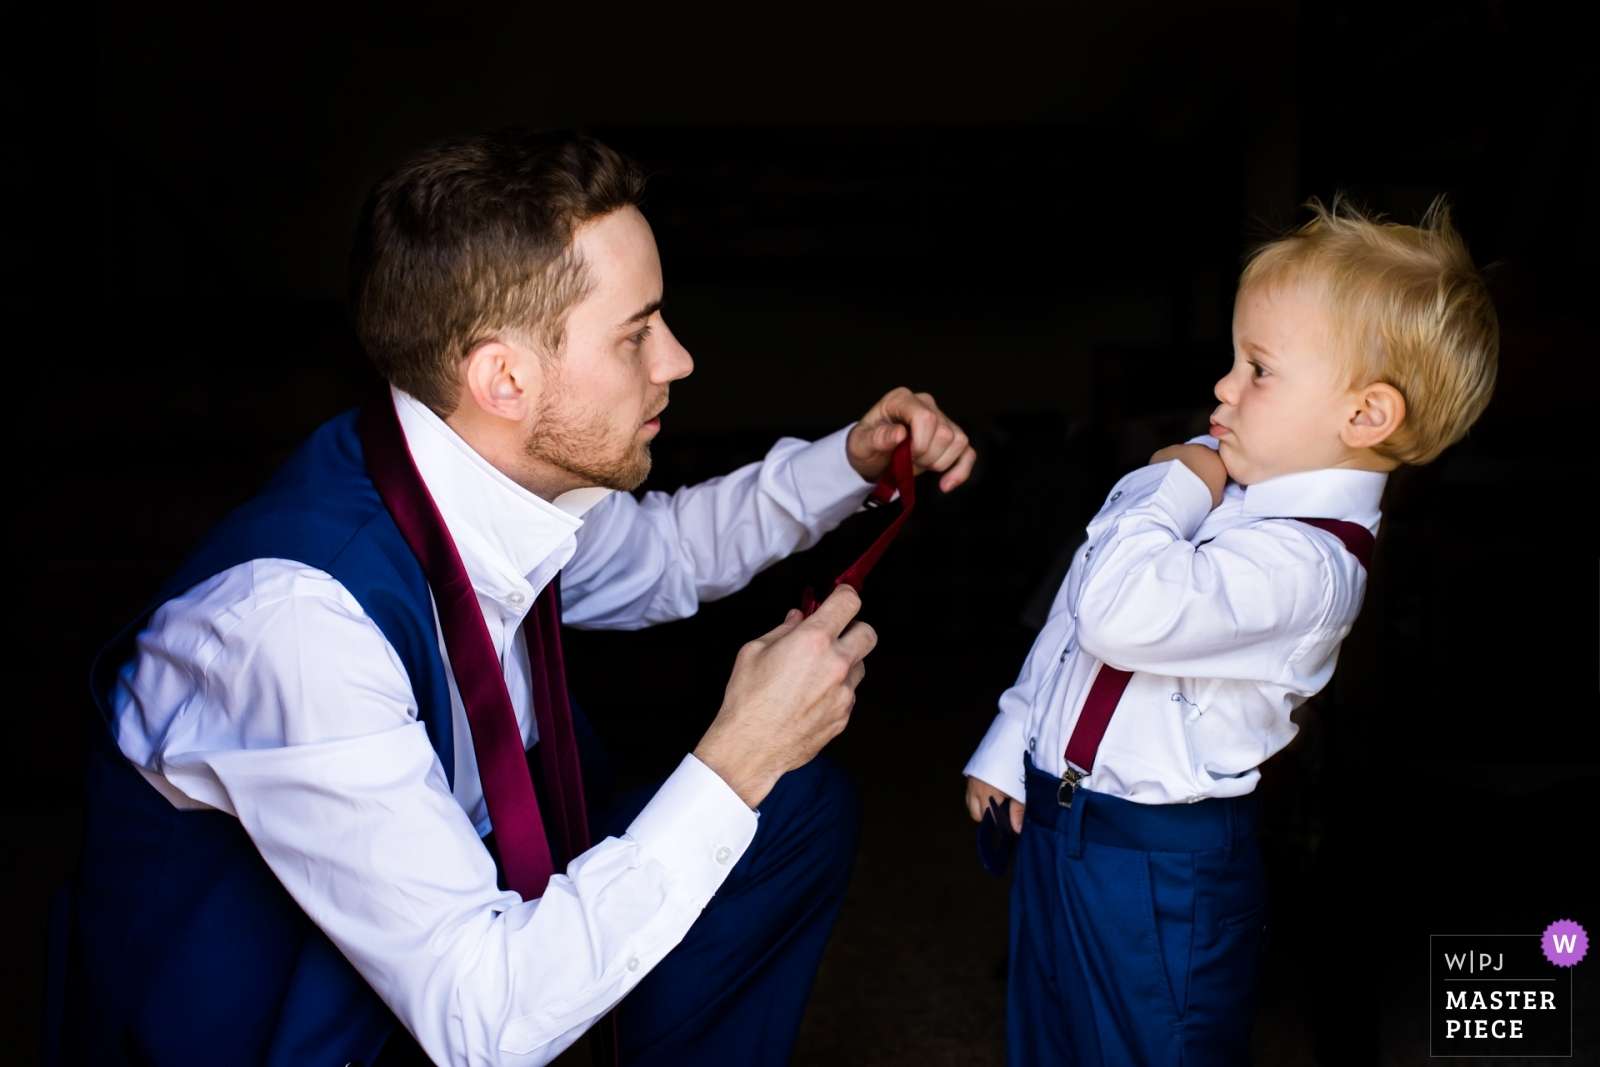 toddler's reaction to dad attempting to put on his tie - Arizona, United States Wedding Photography -  | Family home